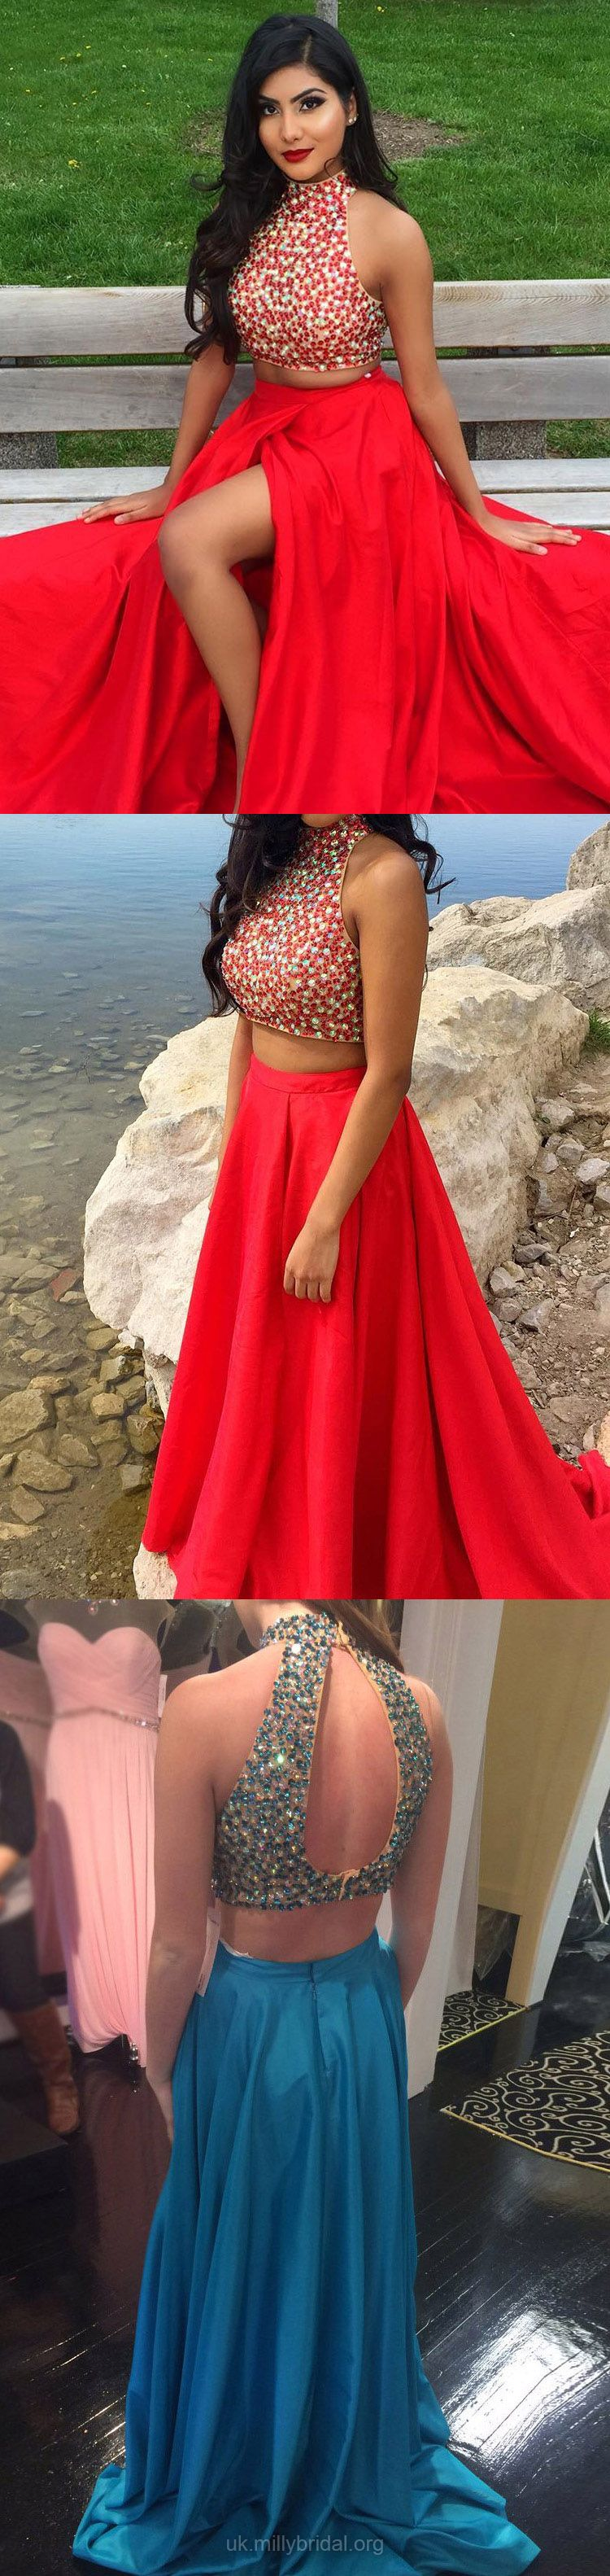 Two piece prom dresses long red prom dresses formal prom